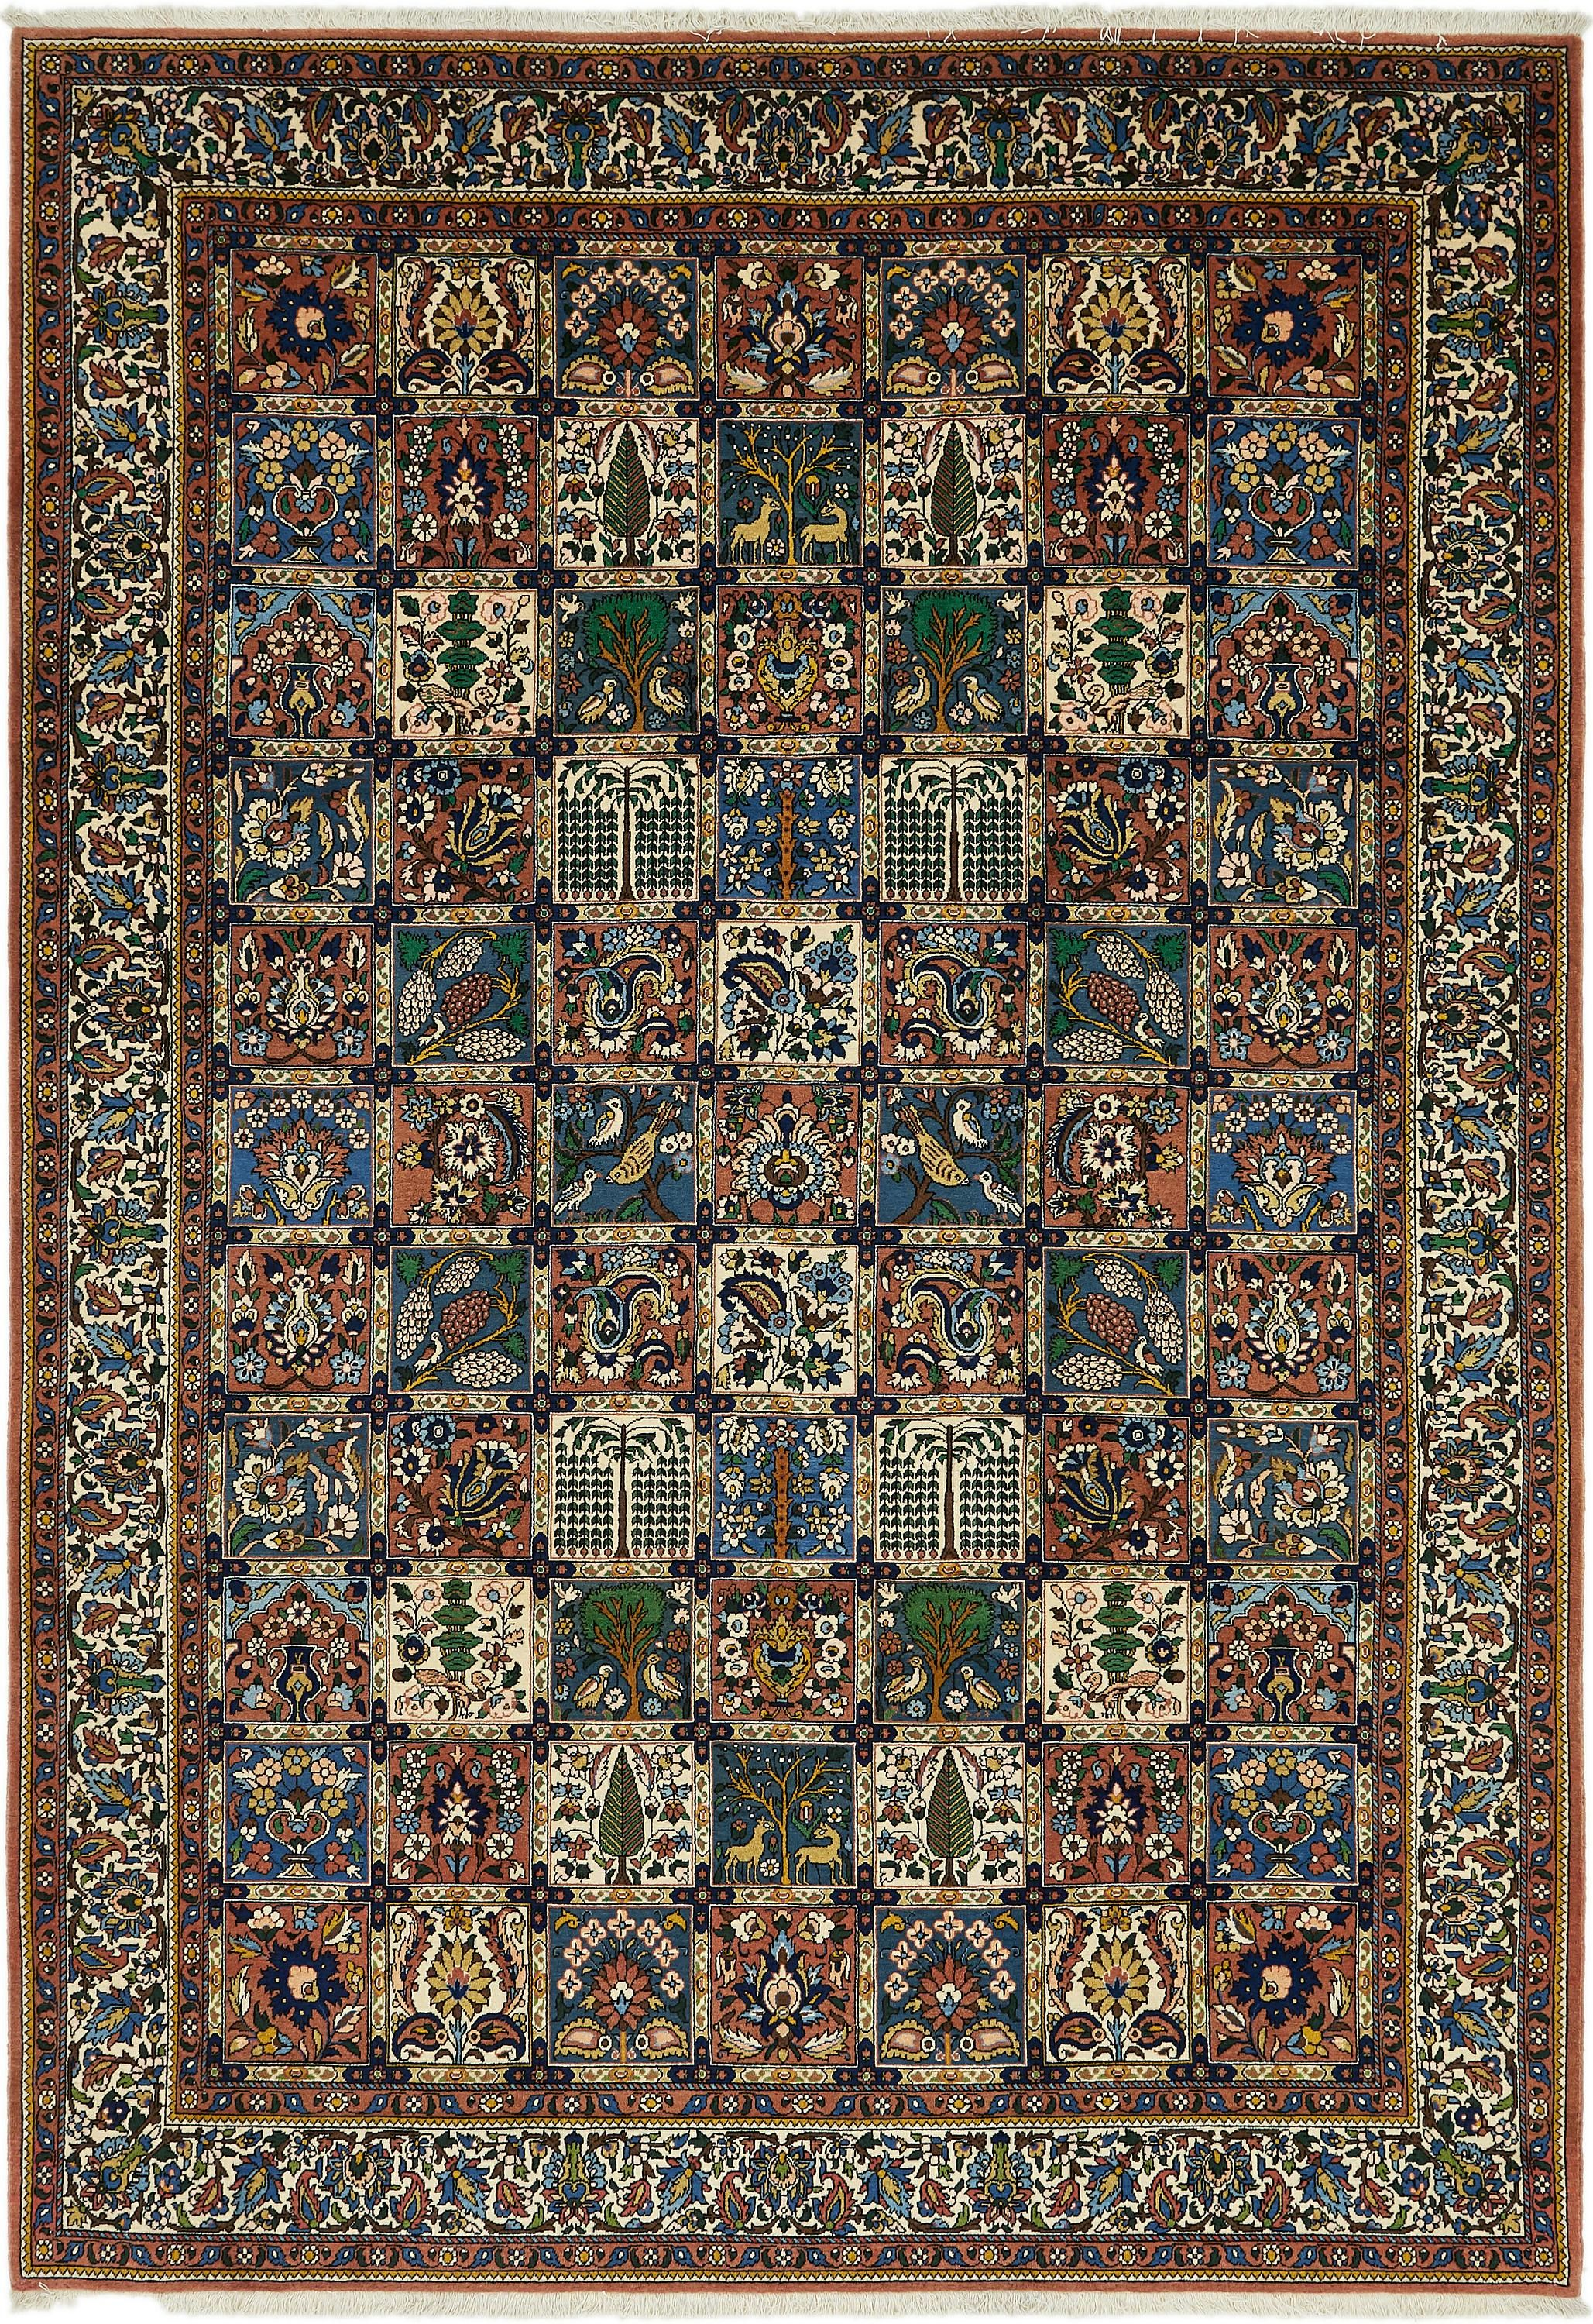 Blue 8 4 X 12 Bakhtiar Persian Rug Esalerugs Persian Rug Rugs Large Area Rugs